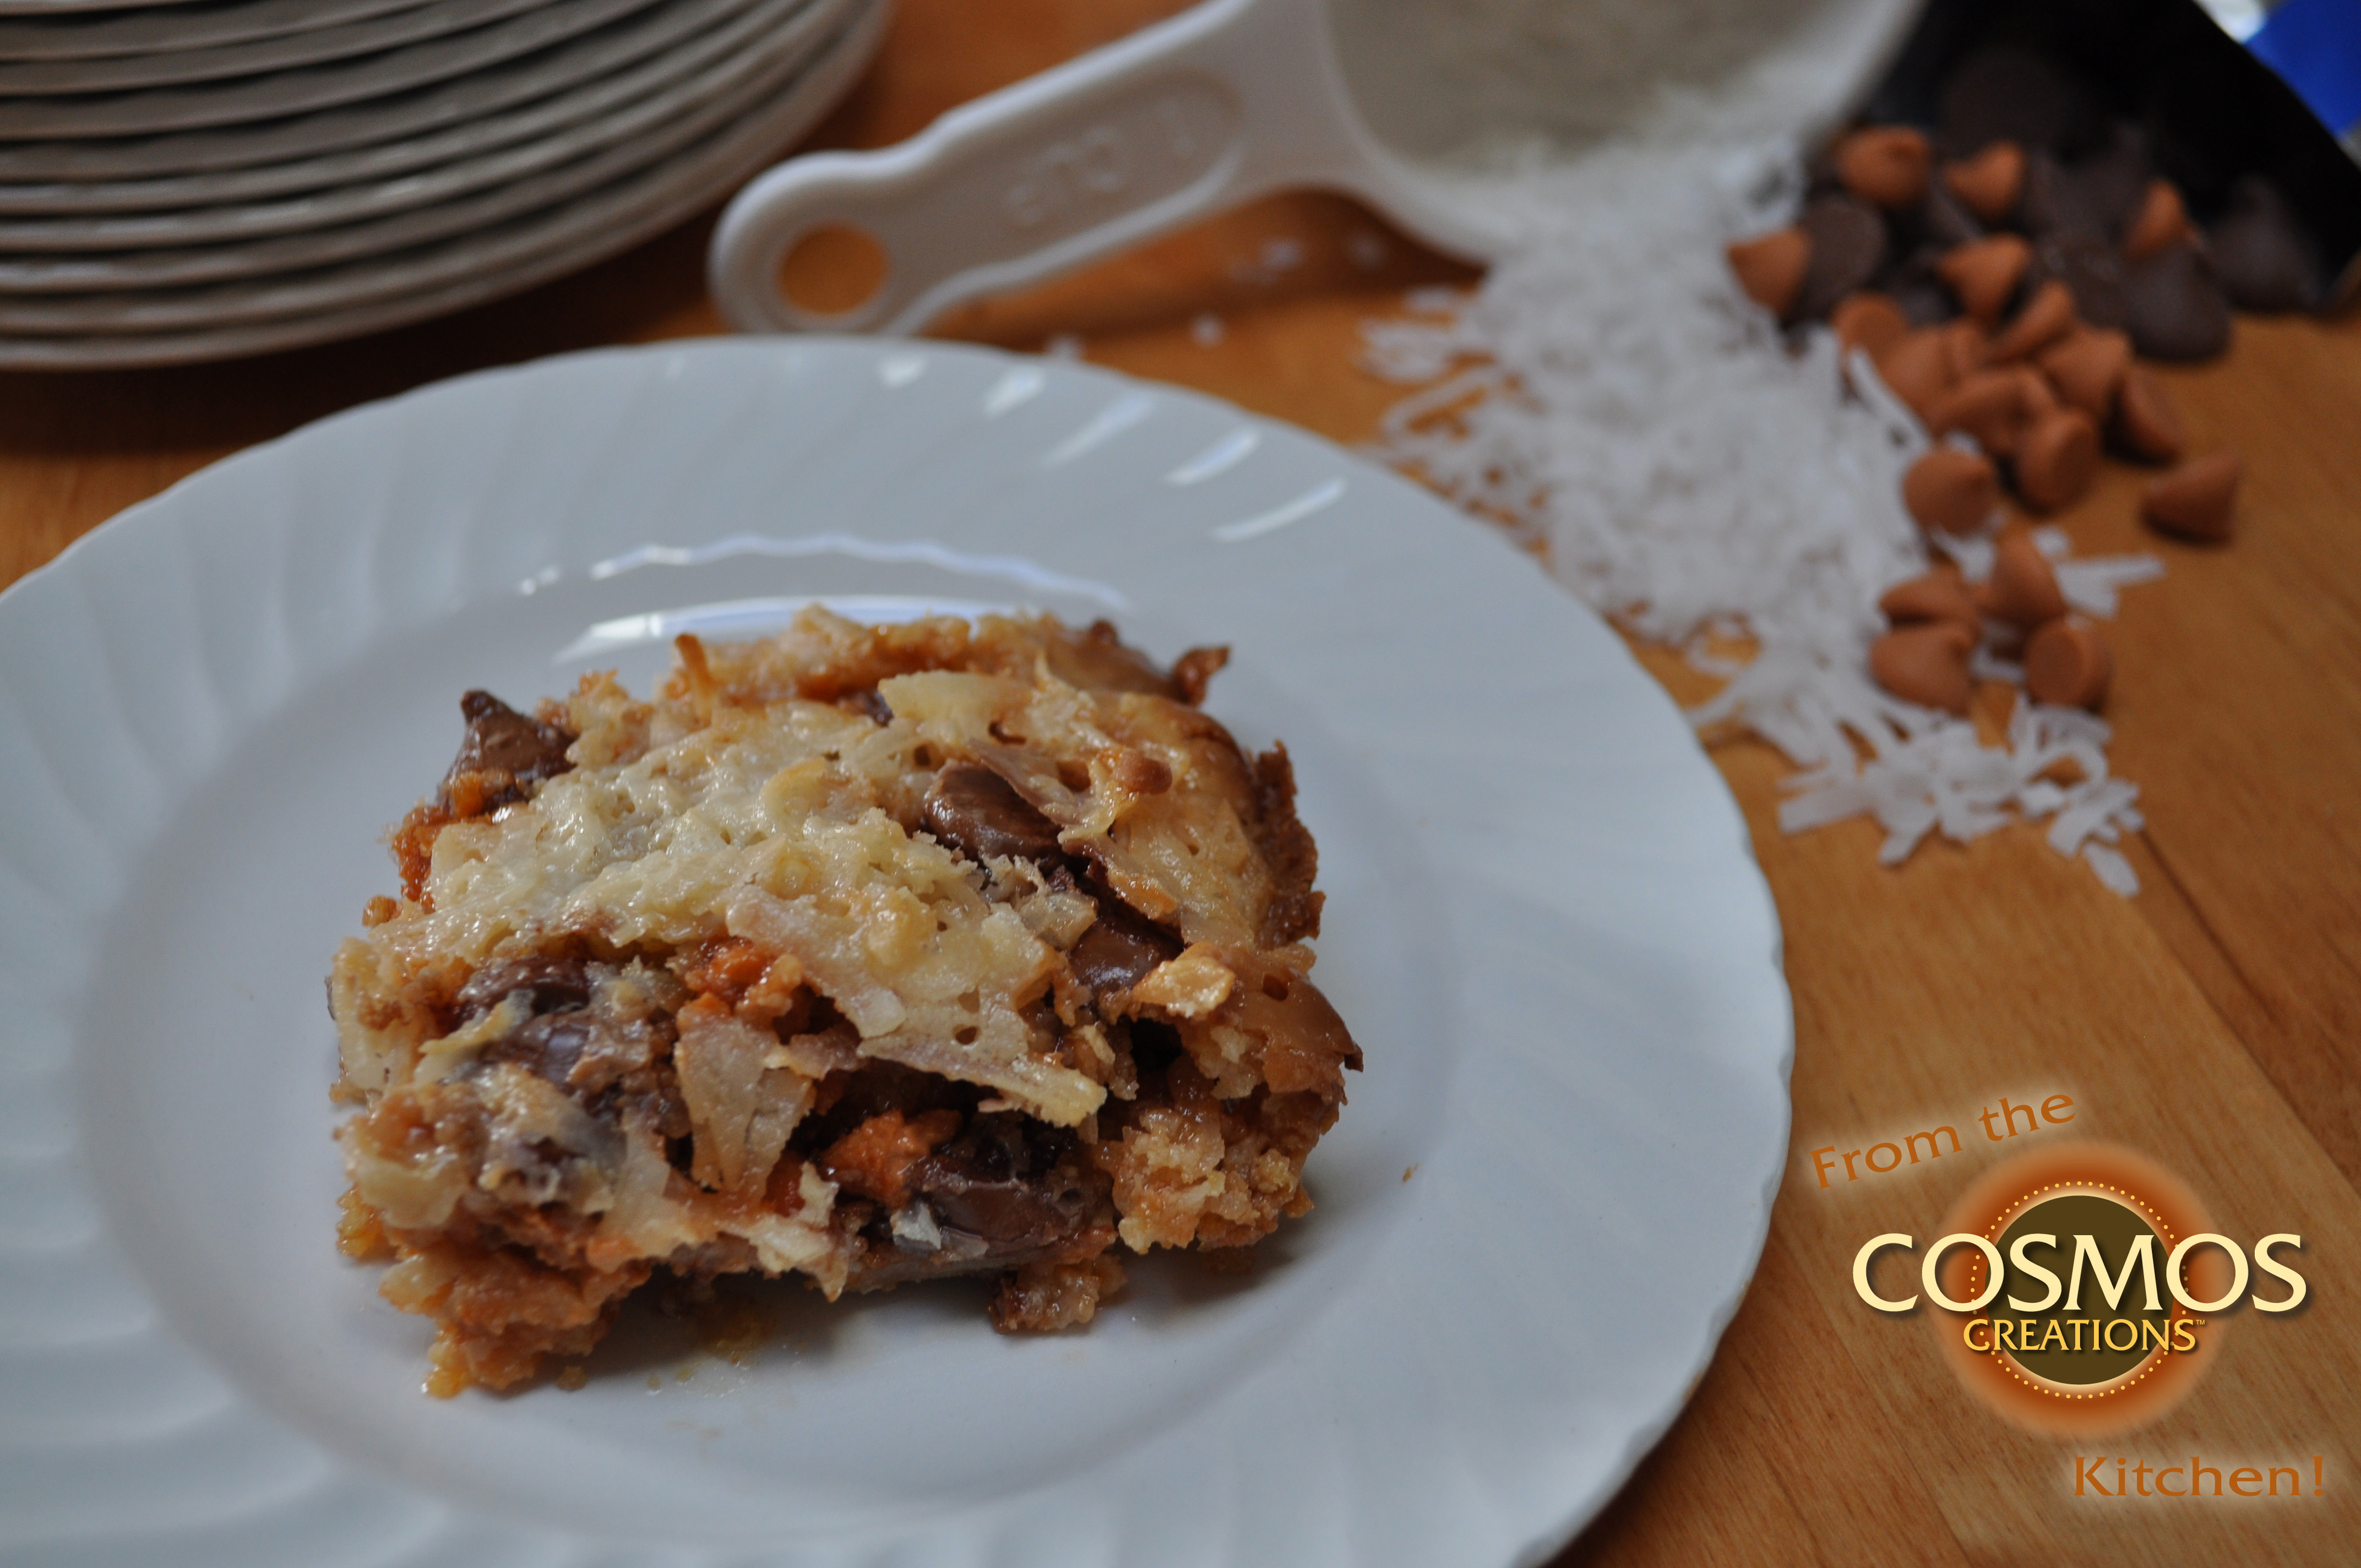 Magic Bars with Cosmos Creations